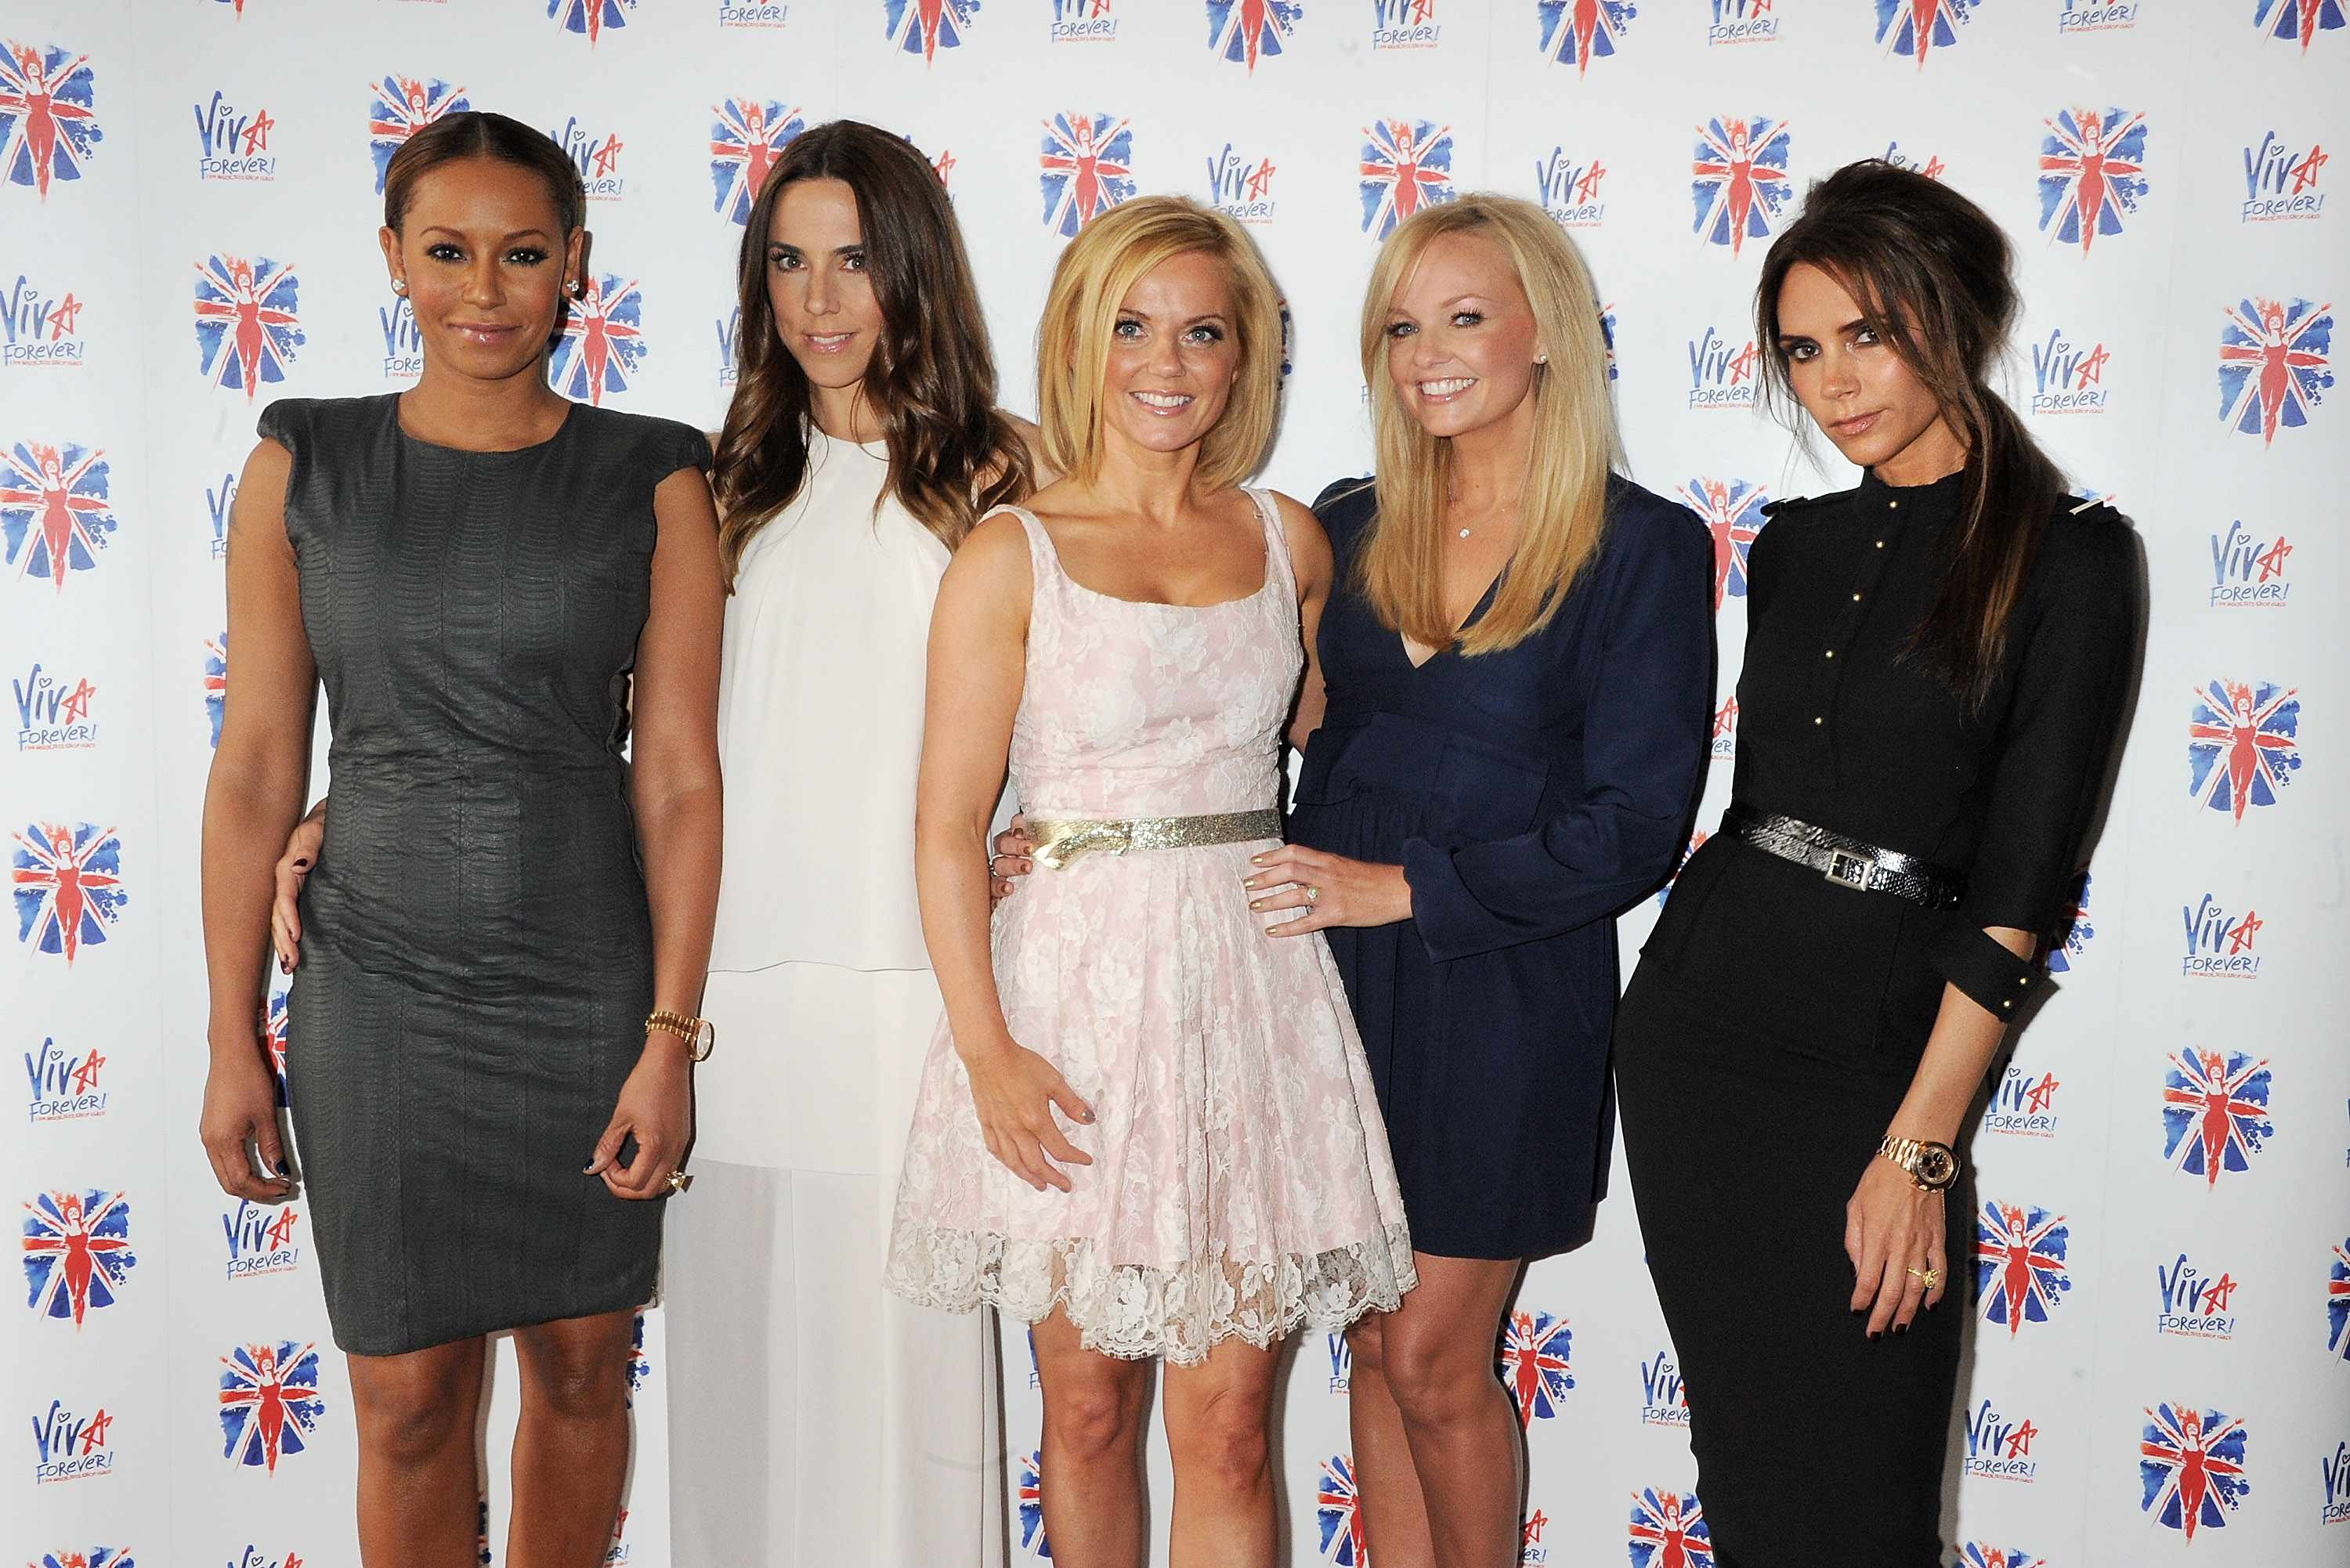 LONDON, ENGLAND - JUNE 26:  (EMBARGOED FOR PUBLICATION IN UK TABLOID NEWSPAPERS UNTIL 48 HOURS AFTER CREATE DATE AND TIME. MANDATORY CREDIT PHOTO BY DAVE M. BENETT/GETTY IMAGES REQUIRED)  (L to R) Melanie Brown aka Mel B, Melanie Chisholm aka Mel C, Geri Halliwell, Emma Bunton and Victoria Beckham pose at the press launch of 'Viva Forever', a new musical based on the music of The Spice Girls, at the St Pancras Renaissance Hotel on June 26, 2012 in London, England.  (Photo by Dave M. Benett/Getty Images)